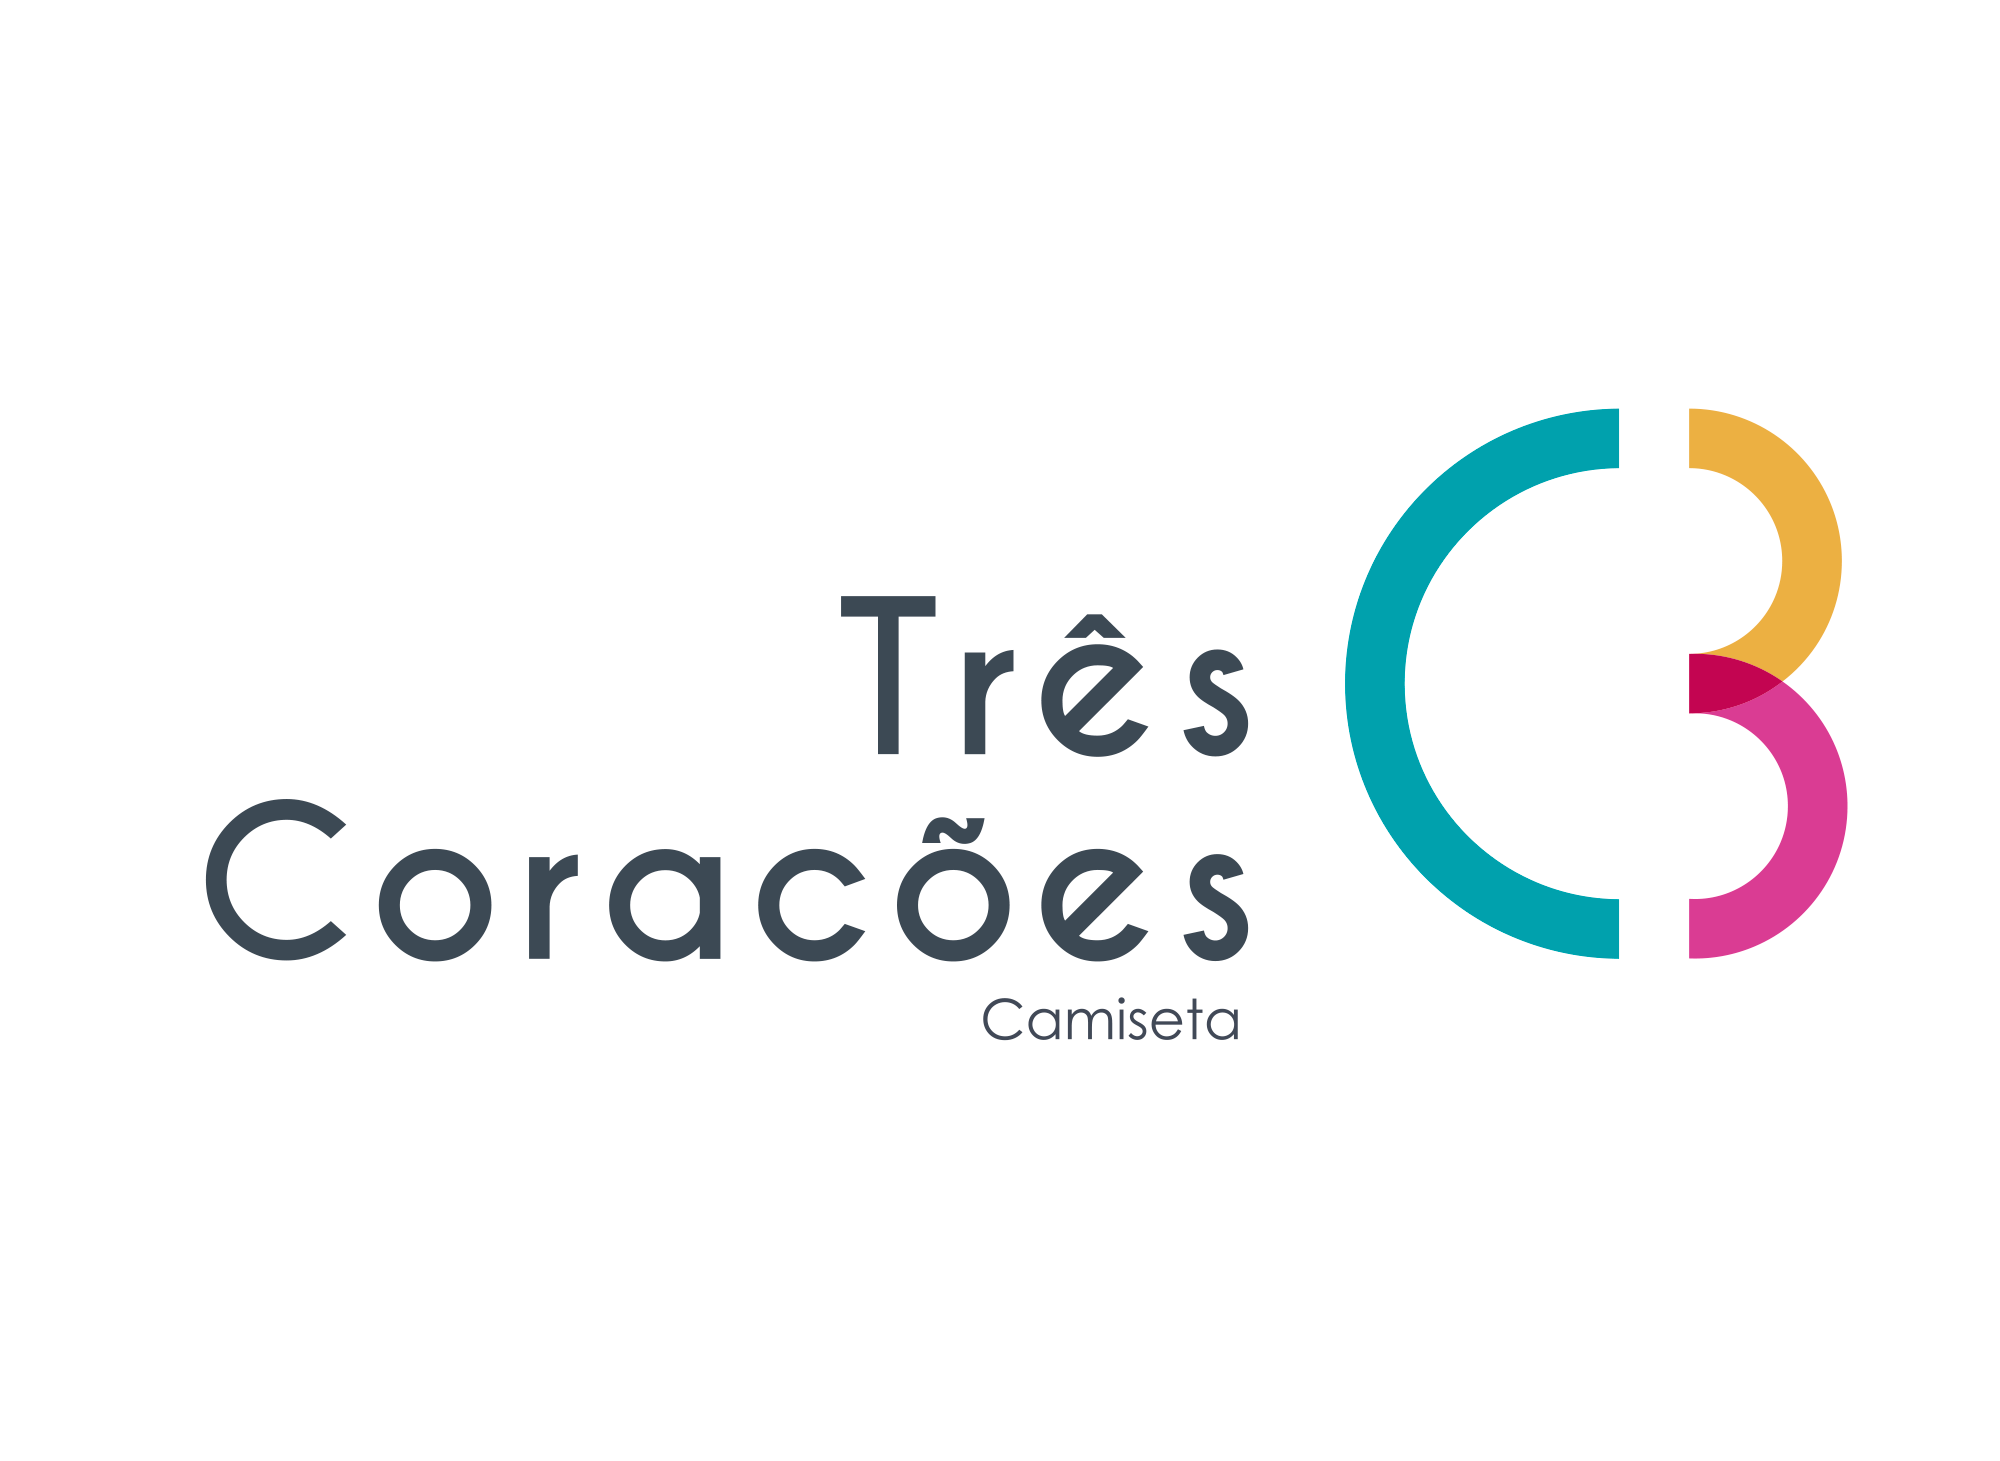 tres-coracoes-camiseta-clientes-atendidos-agencia-diretriz-digital-marketing-fortaleza